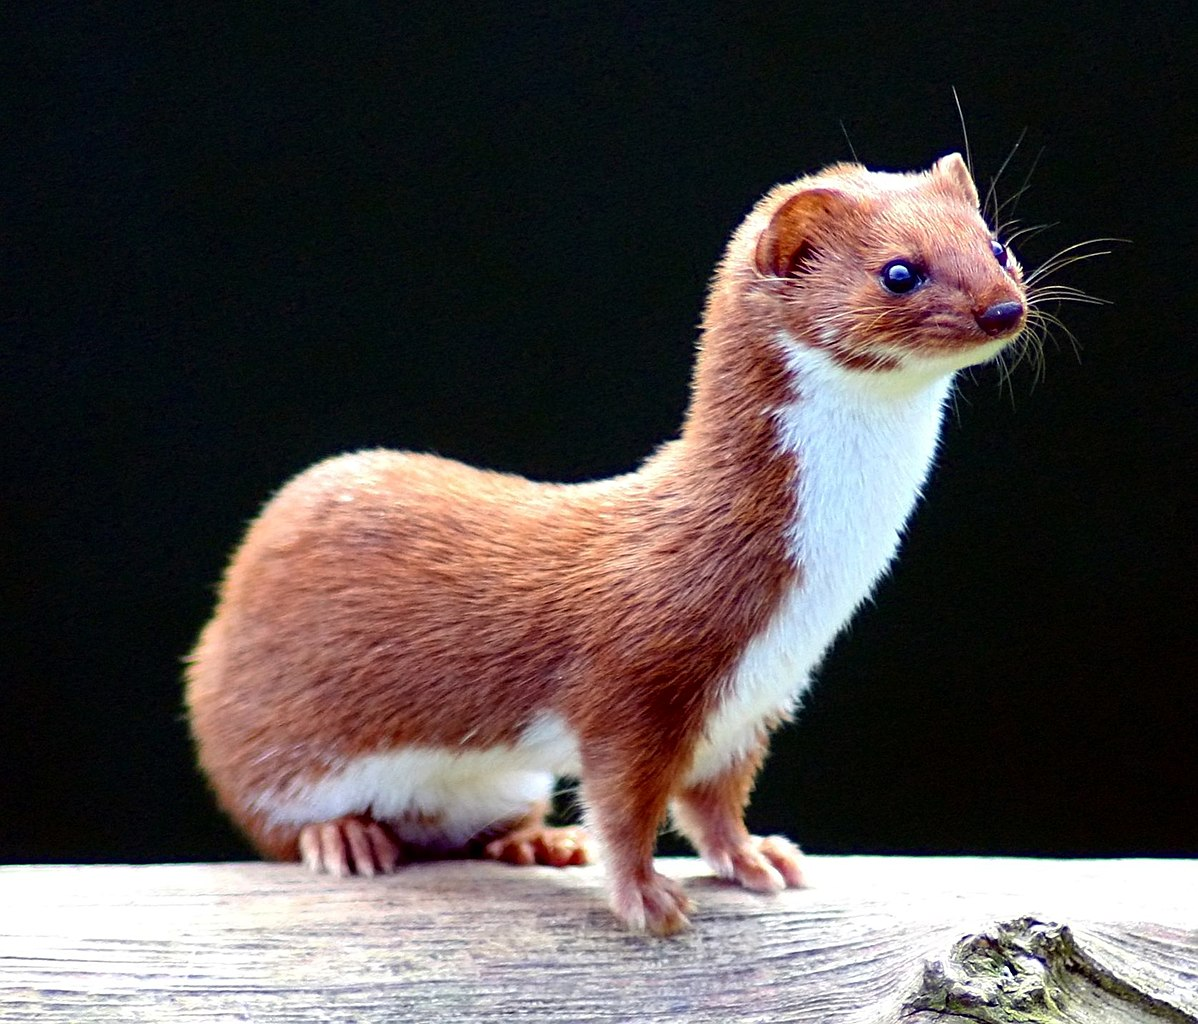 A weasel or least weasel standing on a log